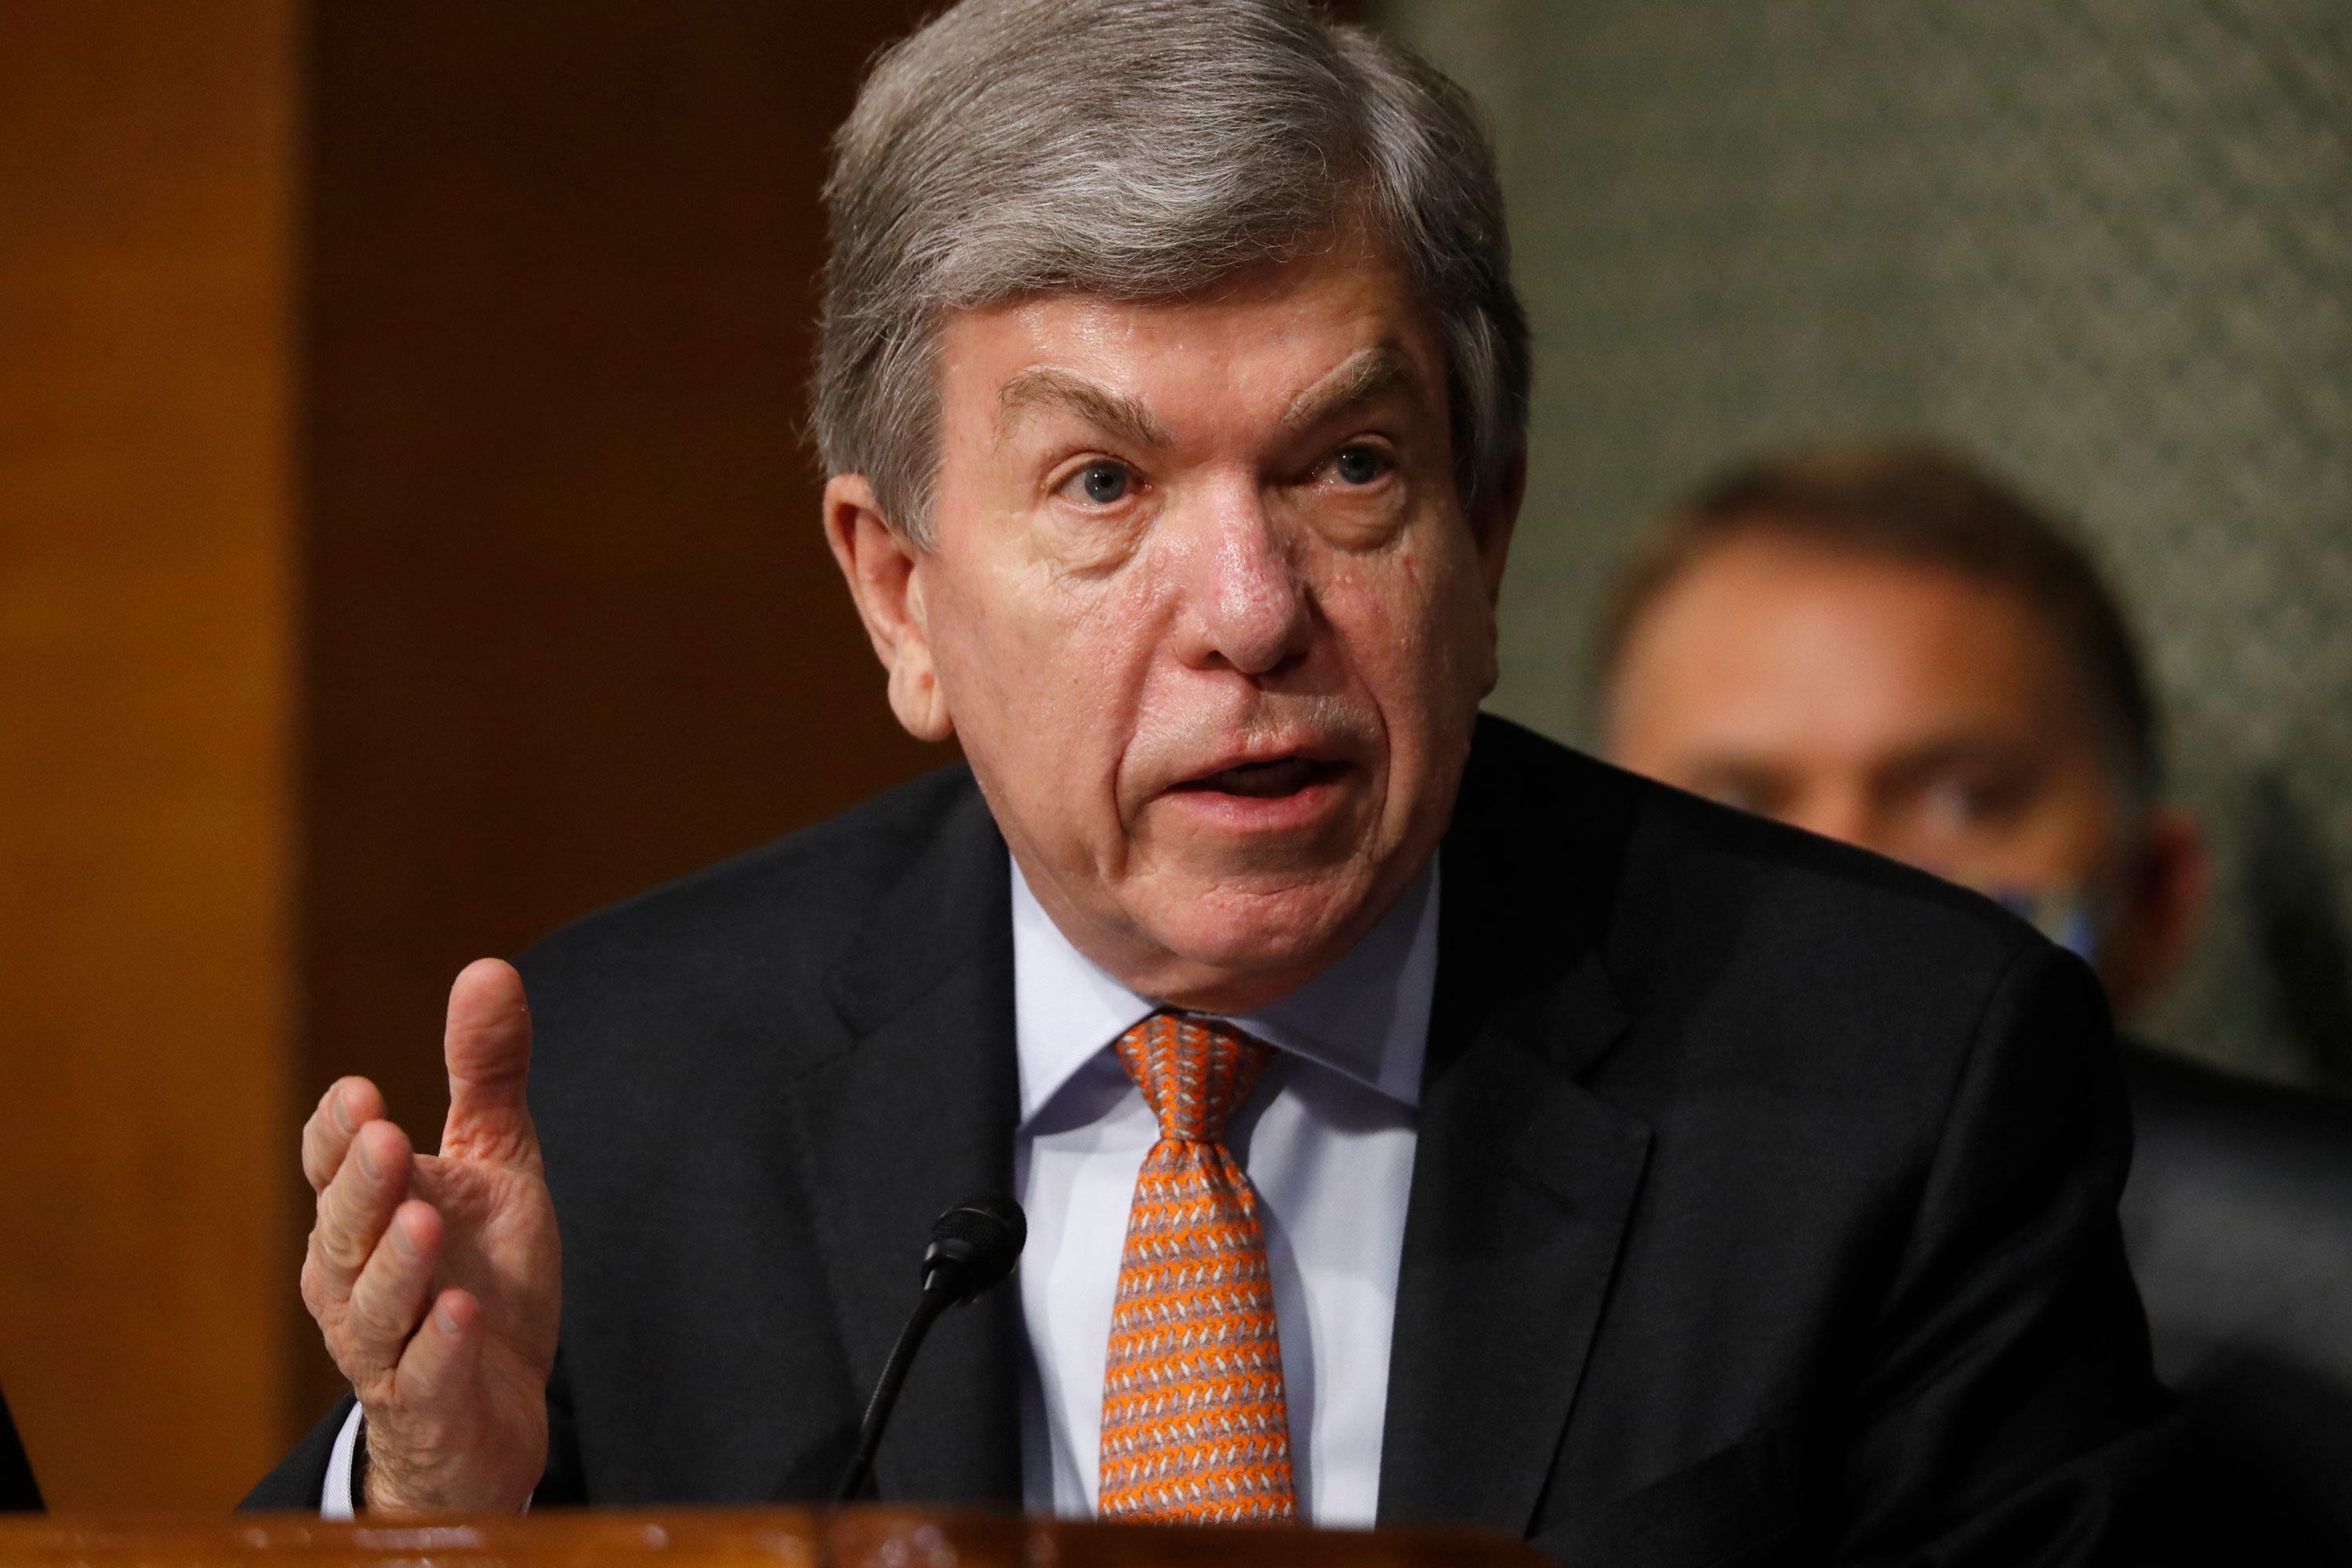 Sen. Roy Blunt, R-Mo., speaks during a Senate Intelligence Committee nomination hearing on Capitol Hill in Washington on May. 5.